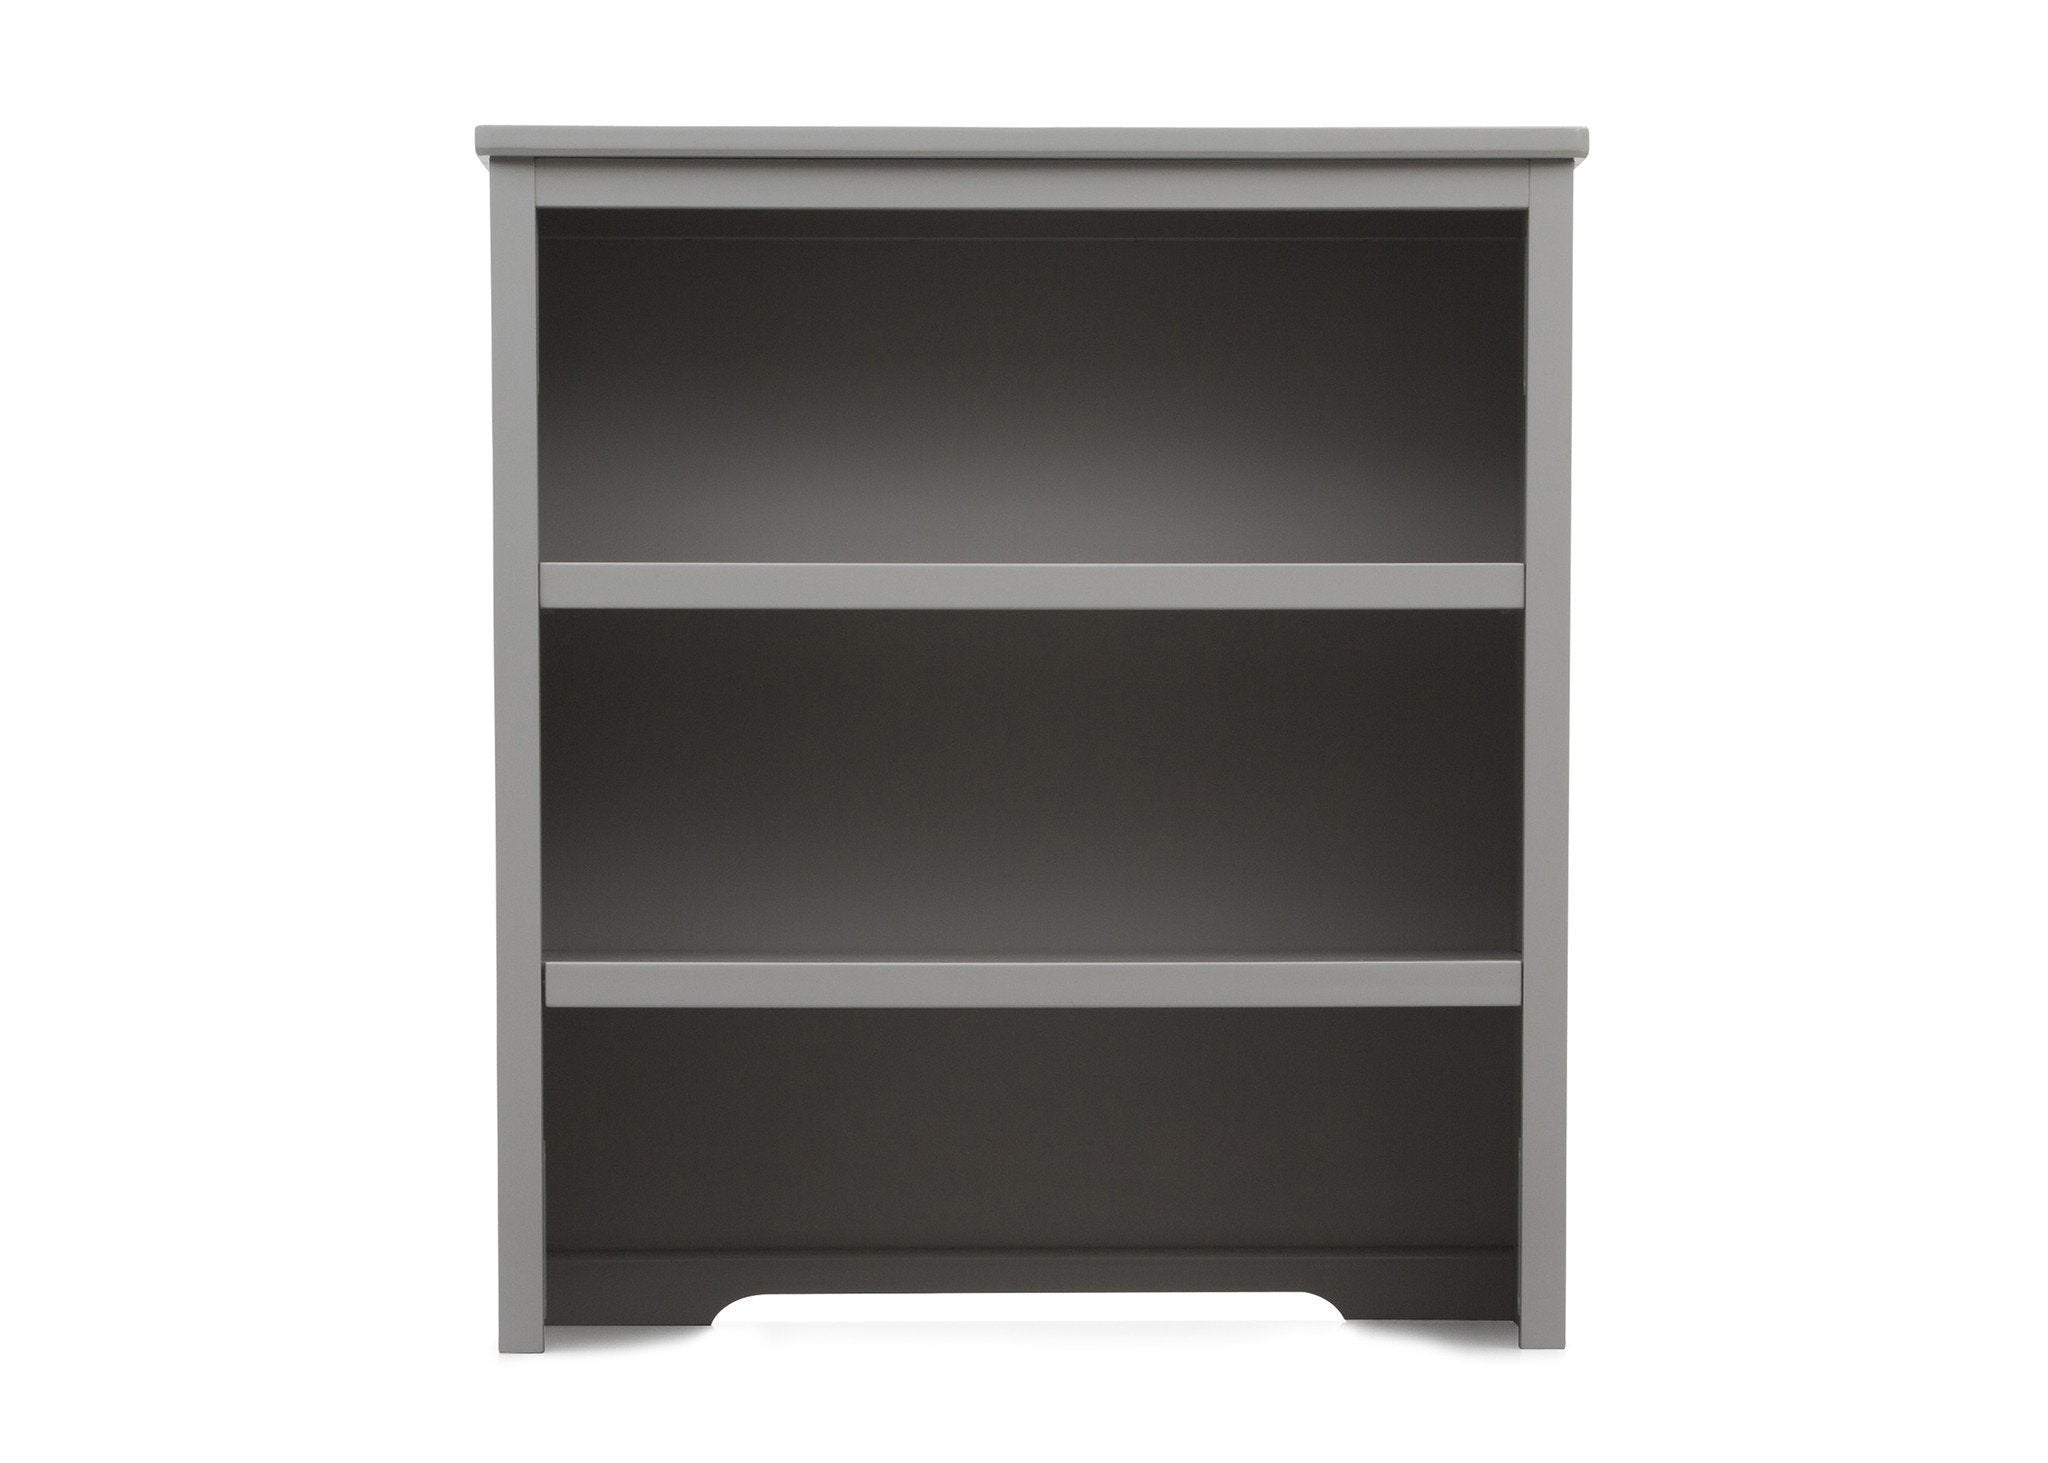 Delta Children Grey (026) Epic Bookcase/Hutch Front View with Base a1a